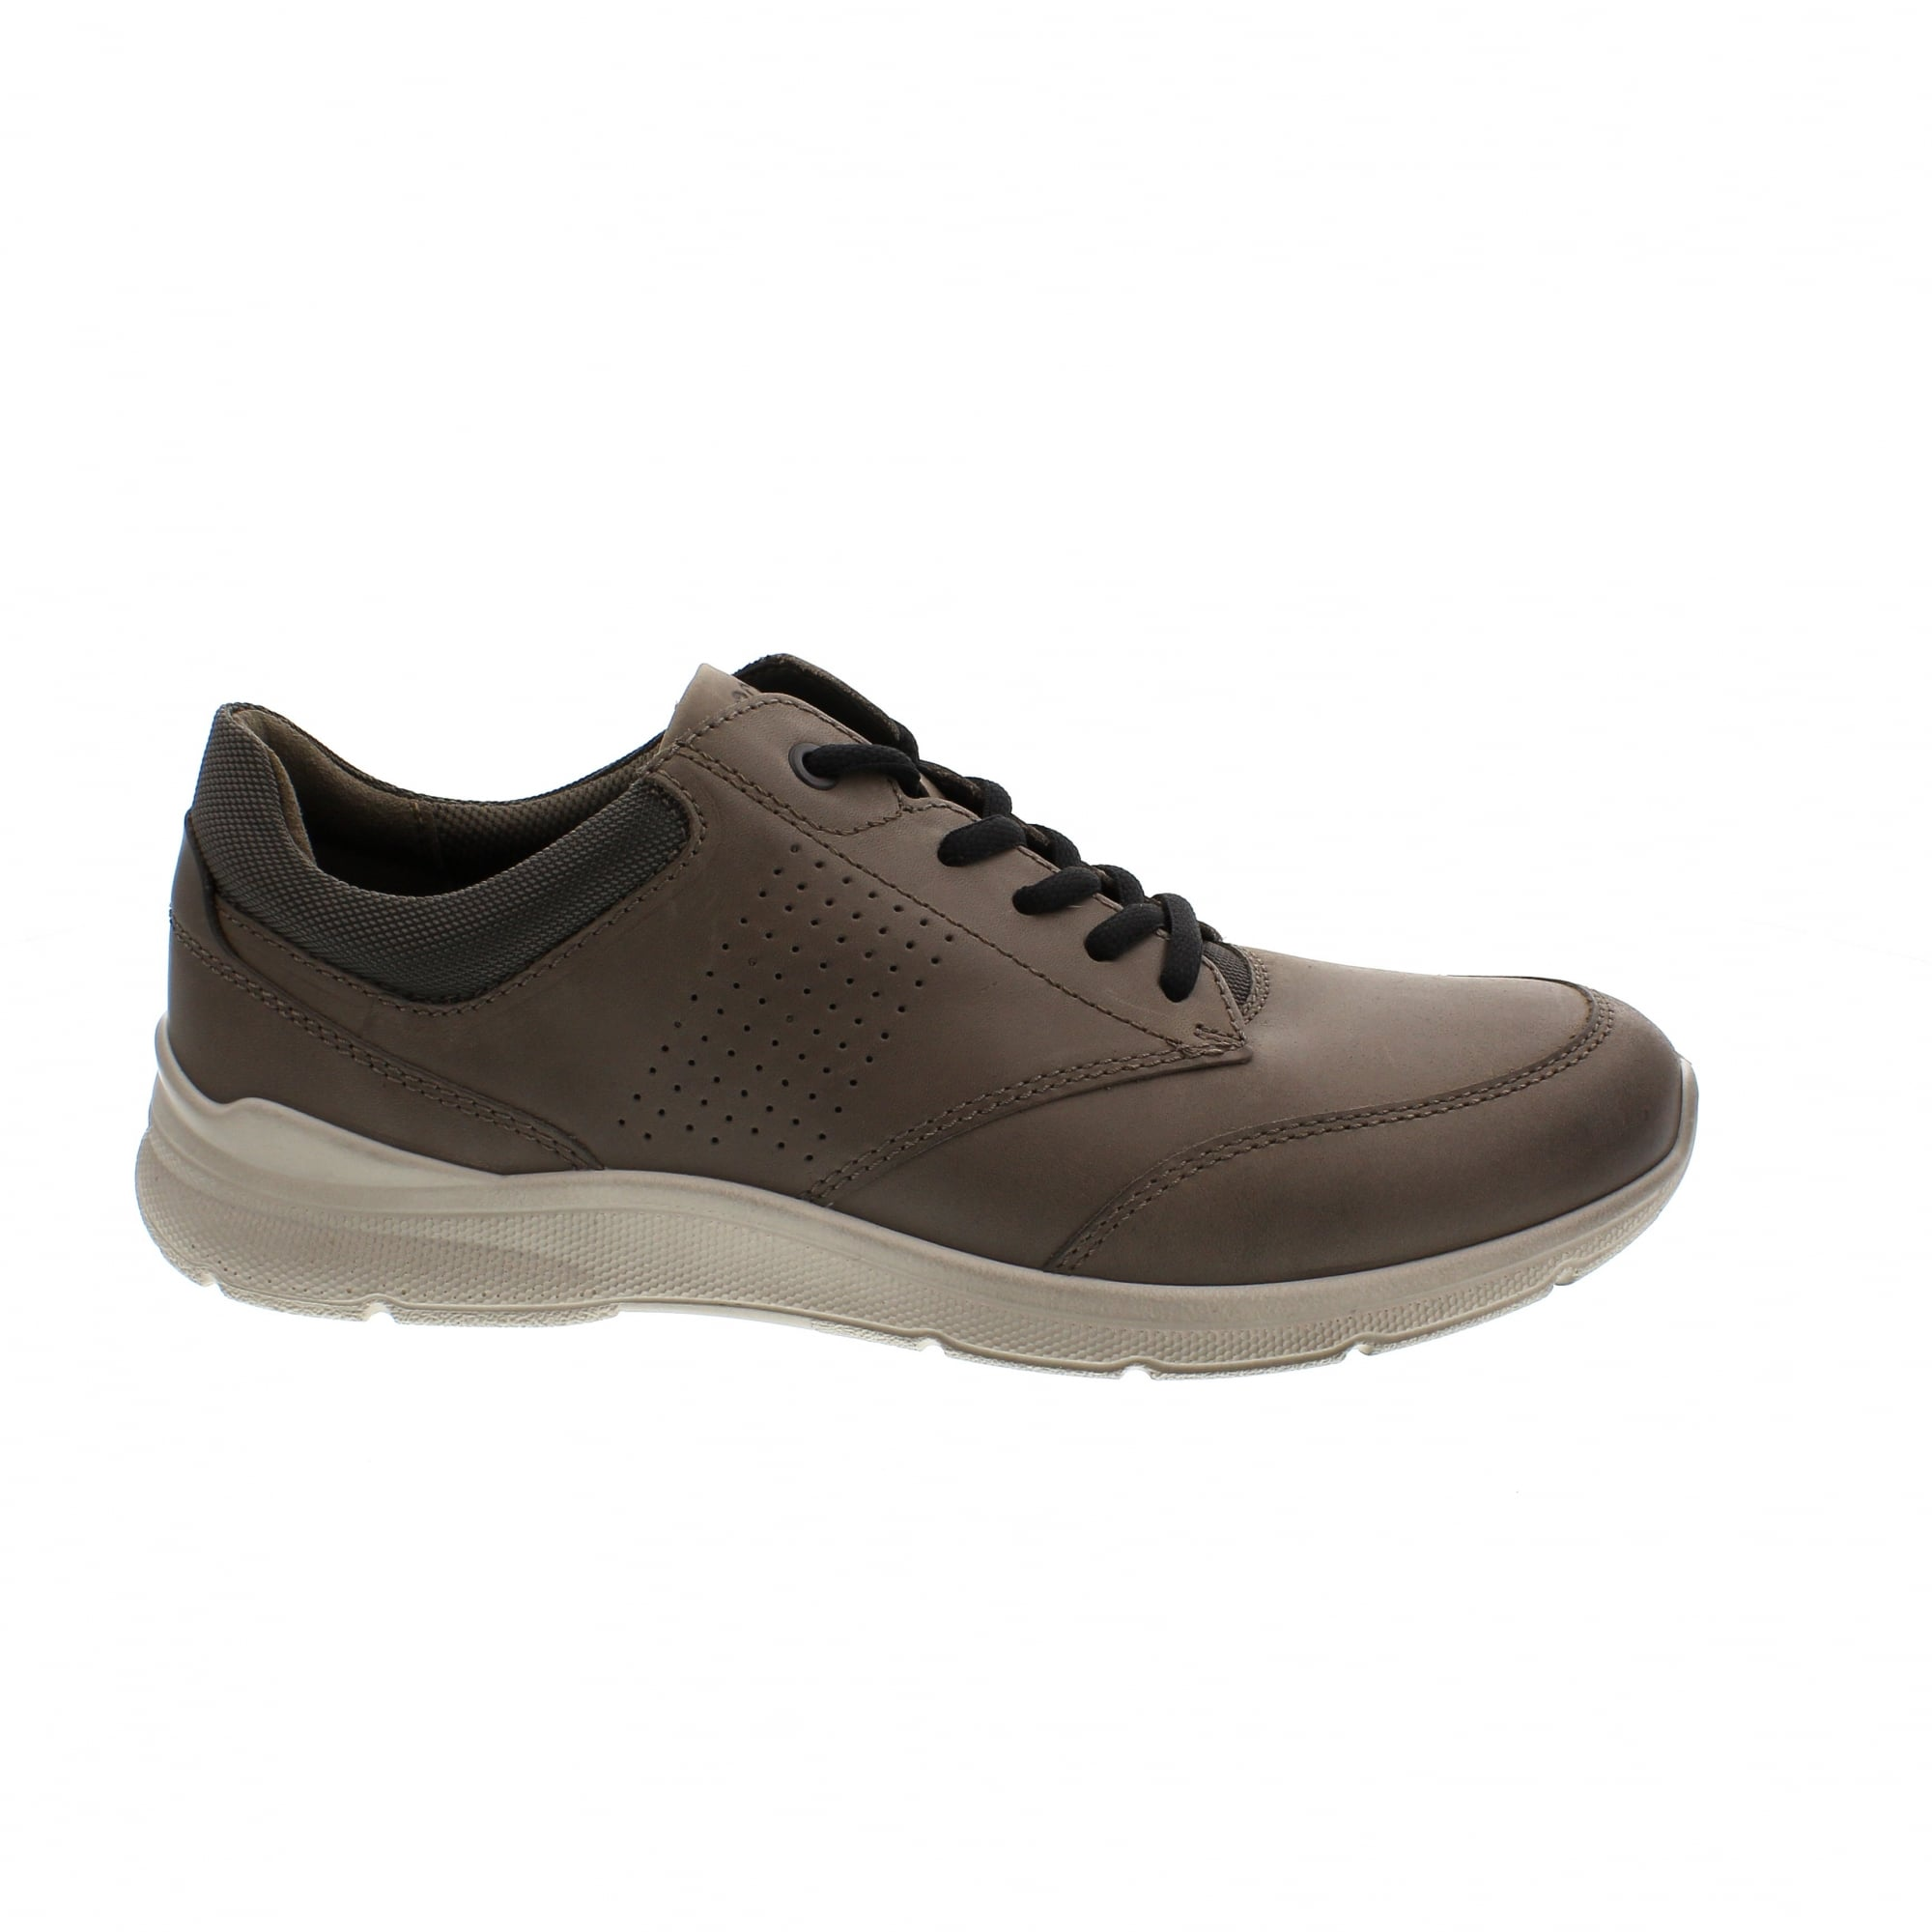 54d3ed6eb539 Ecco Irving 511624-02559 Mens Shoes